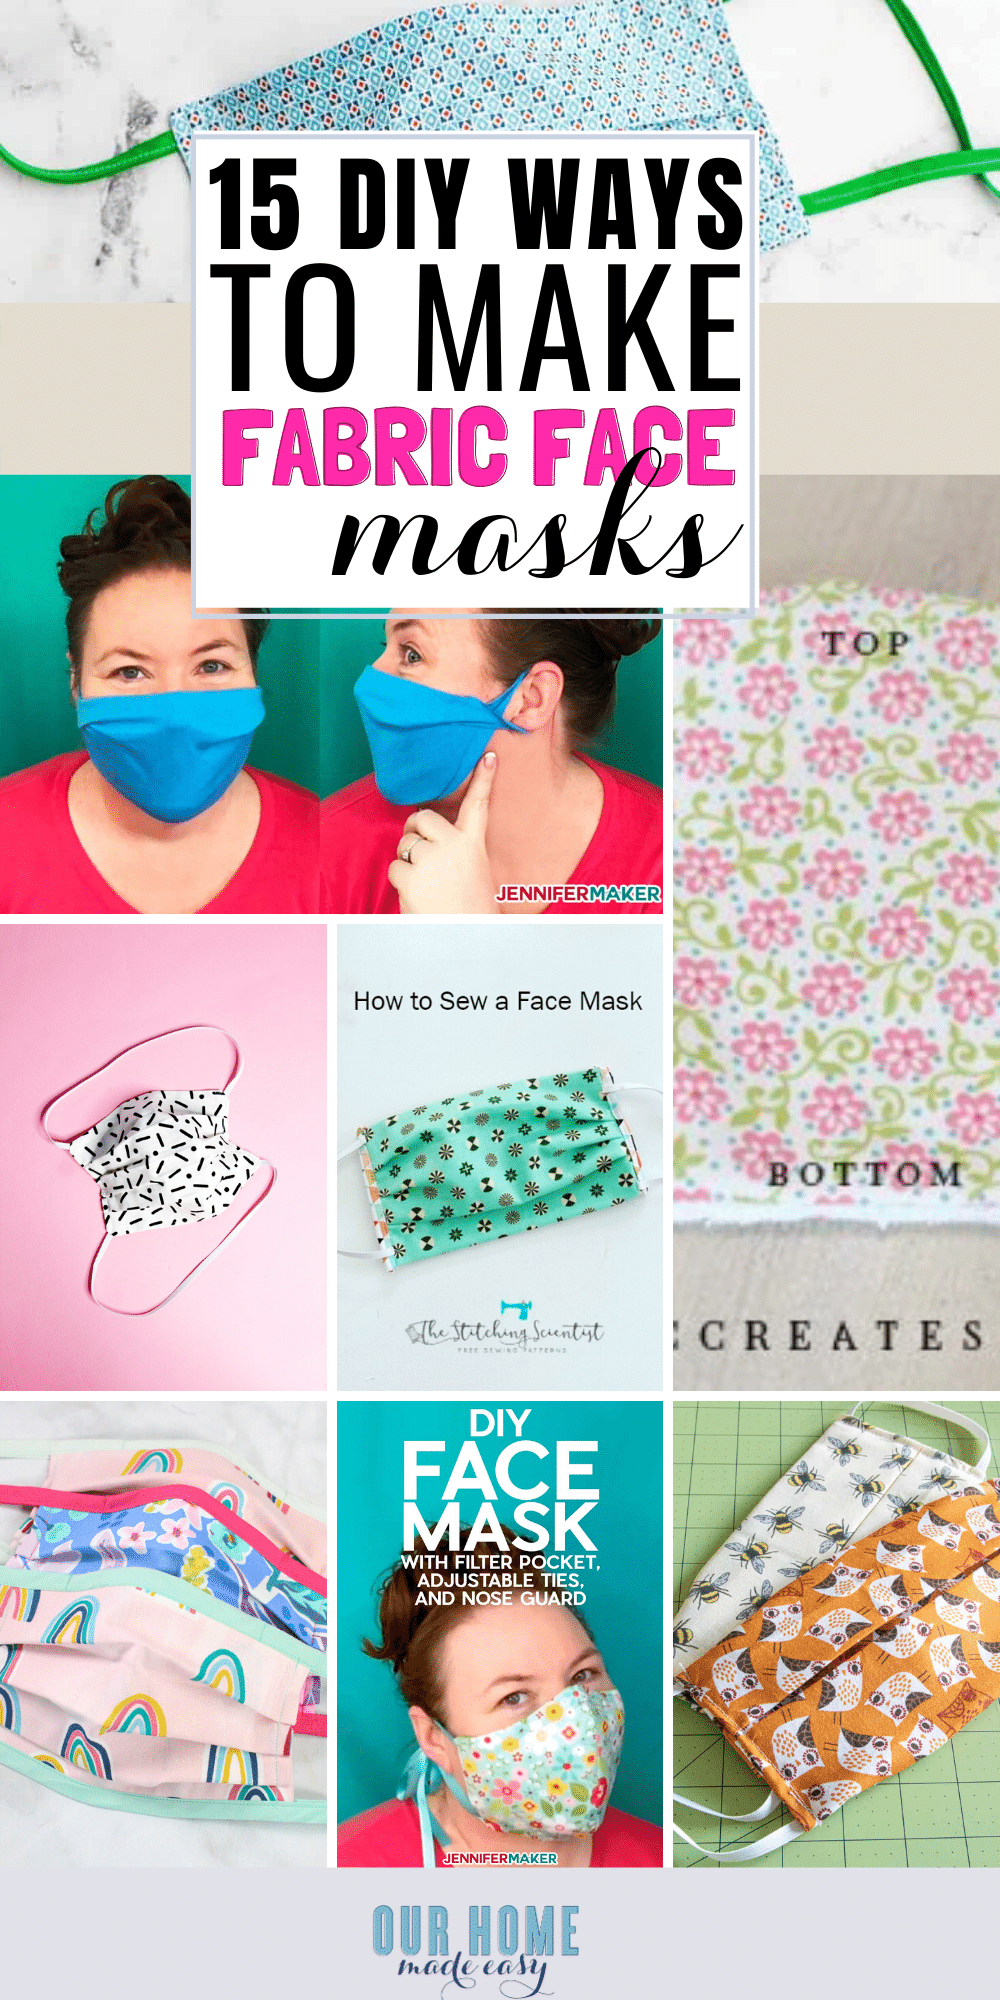 These DIY face masks are easy to make! Whether you need removable filters or no-sew ideas, you are sure to find your best fabric masks here!